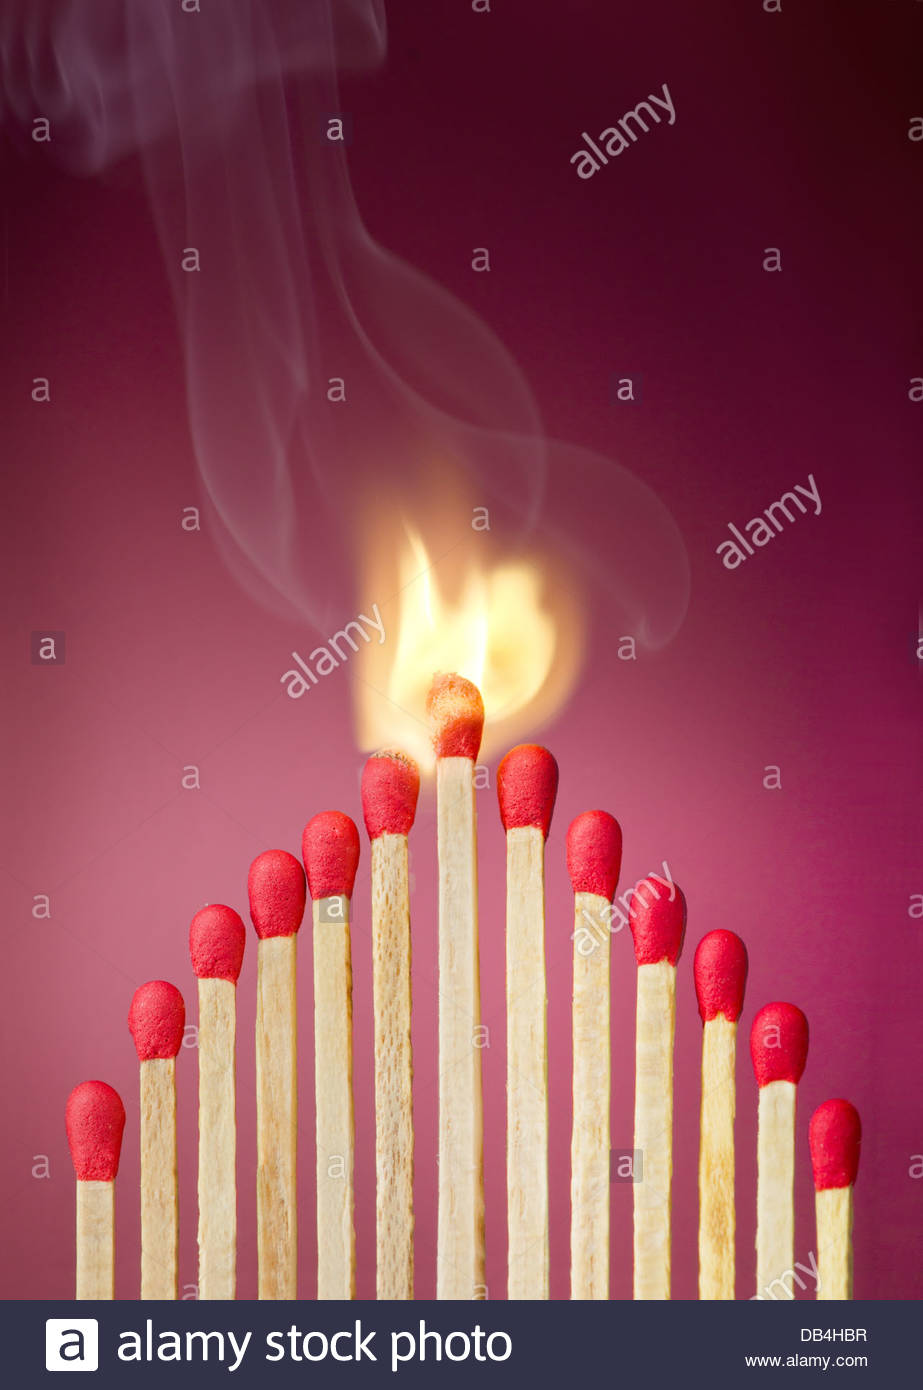 Burning match setting fire to its neighbors, a metaphor for ideas and inspiration - Stock Image